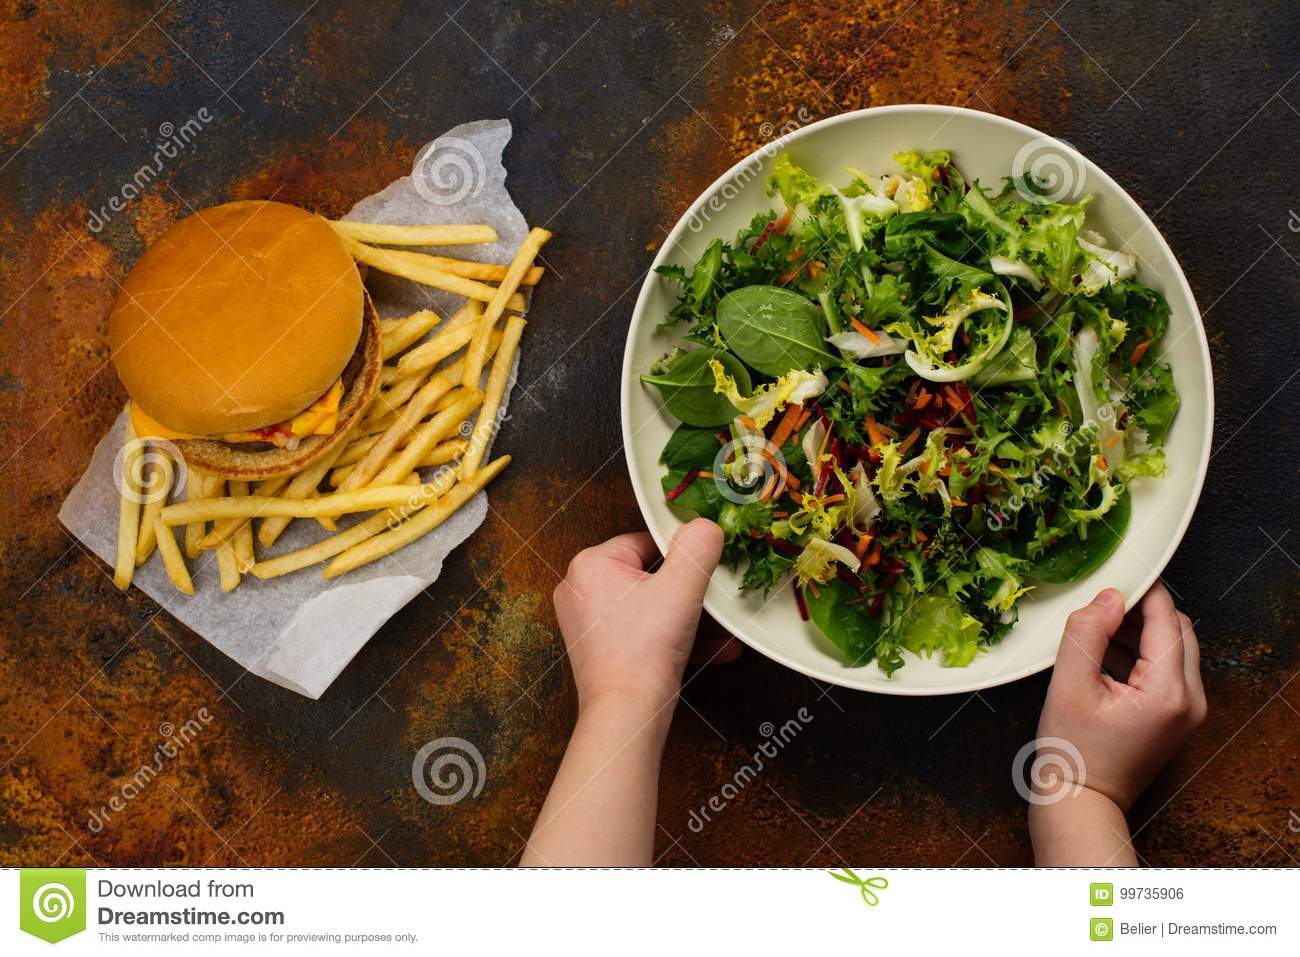 Child Making Choice Between Healthy Salad And Fast Food